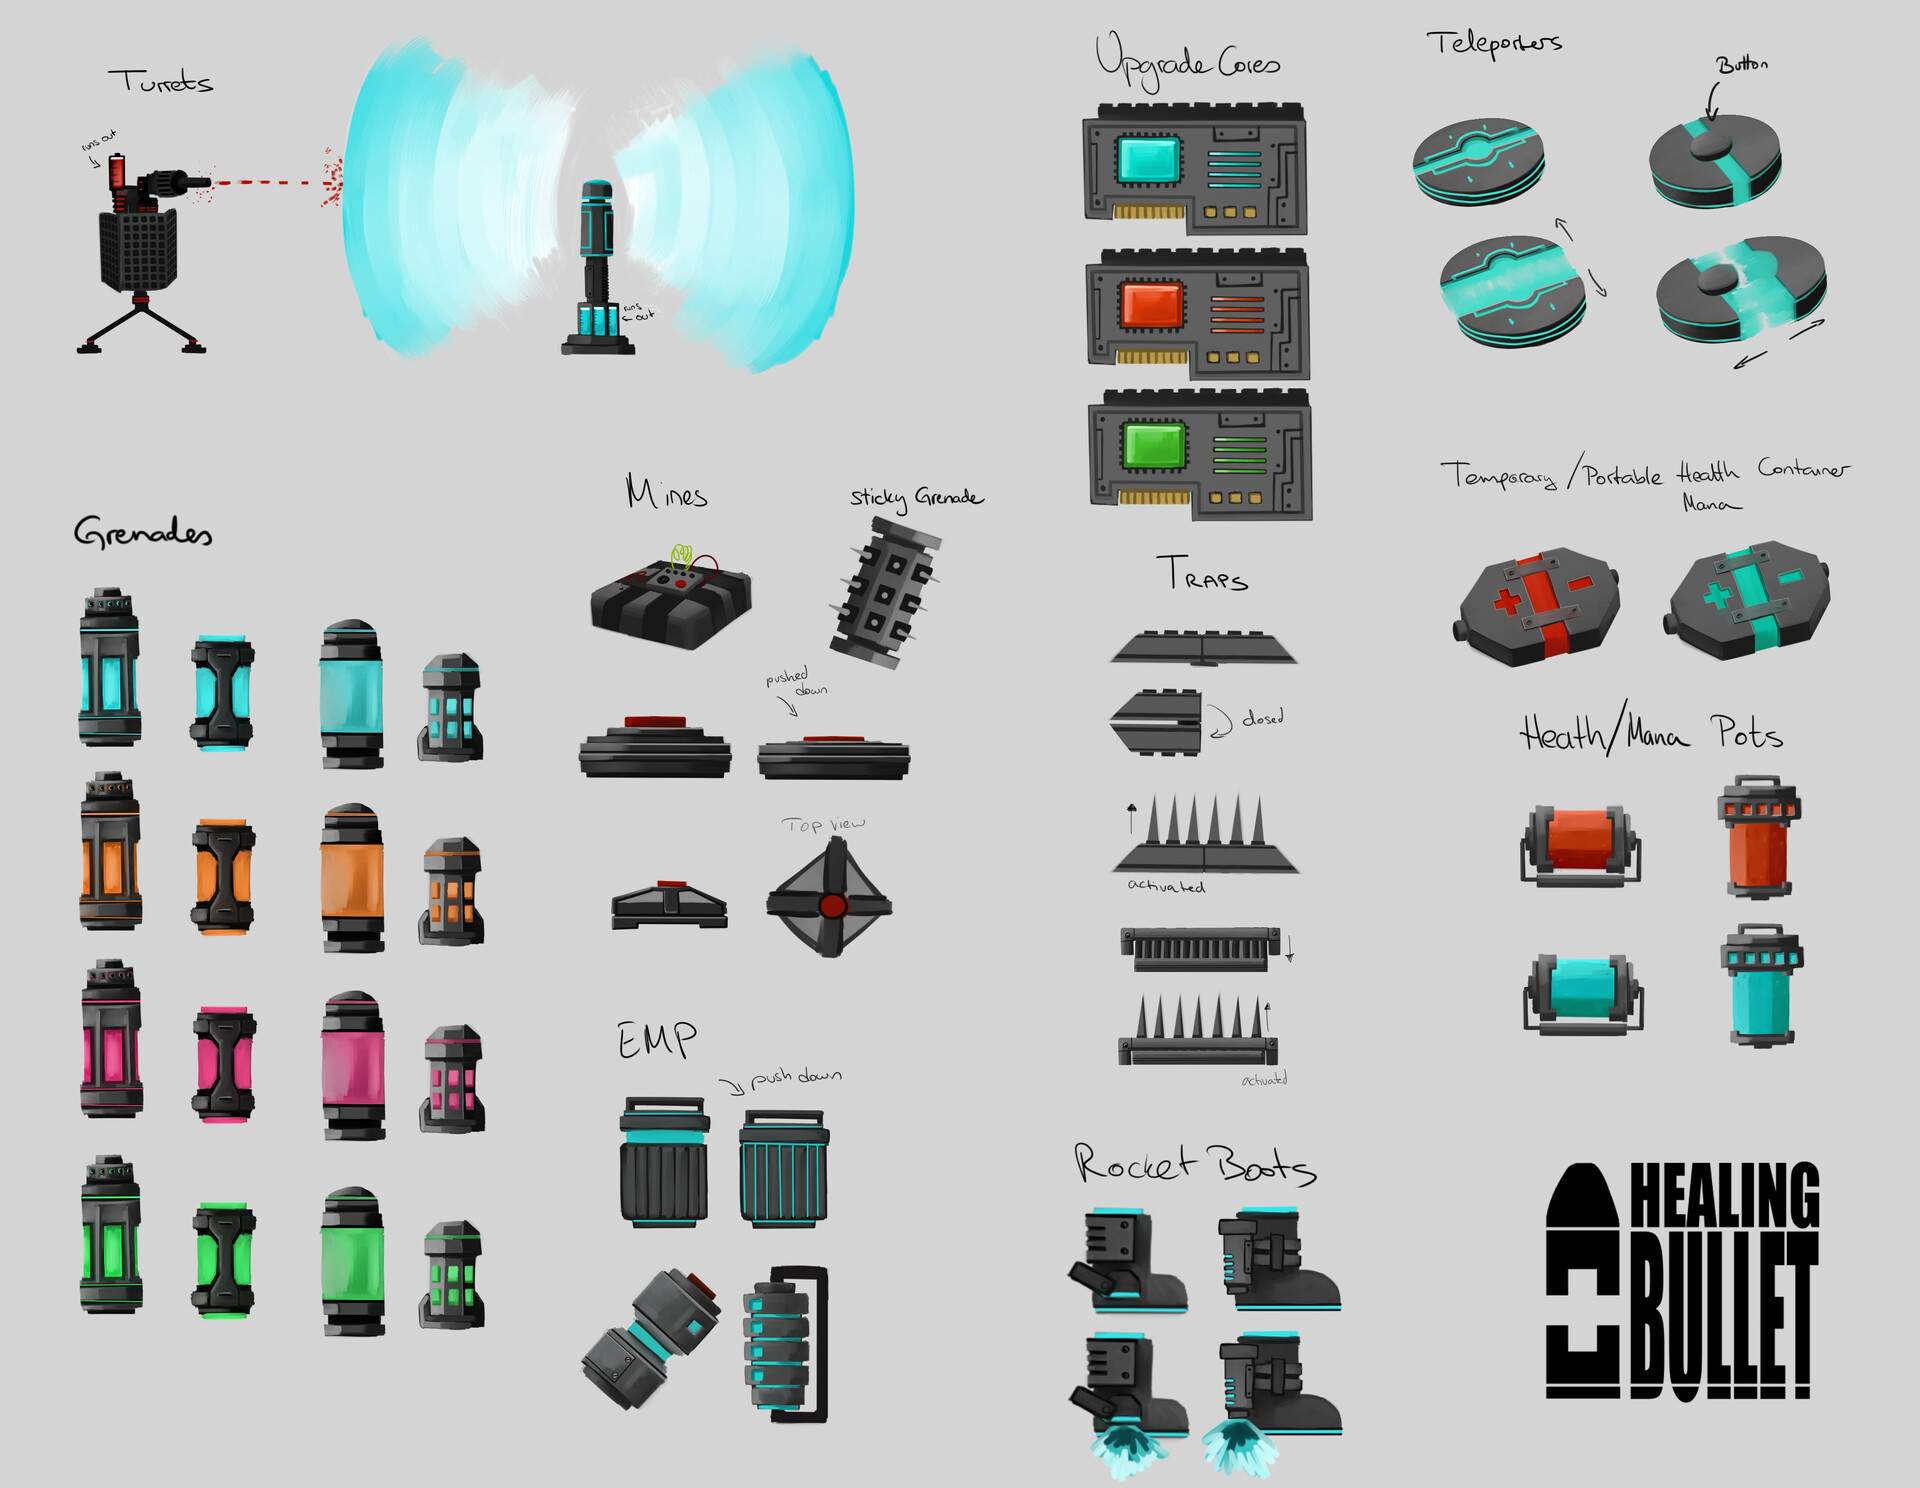 Concept sketches for items